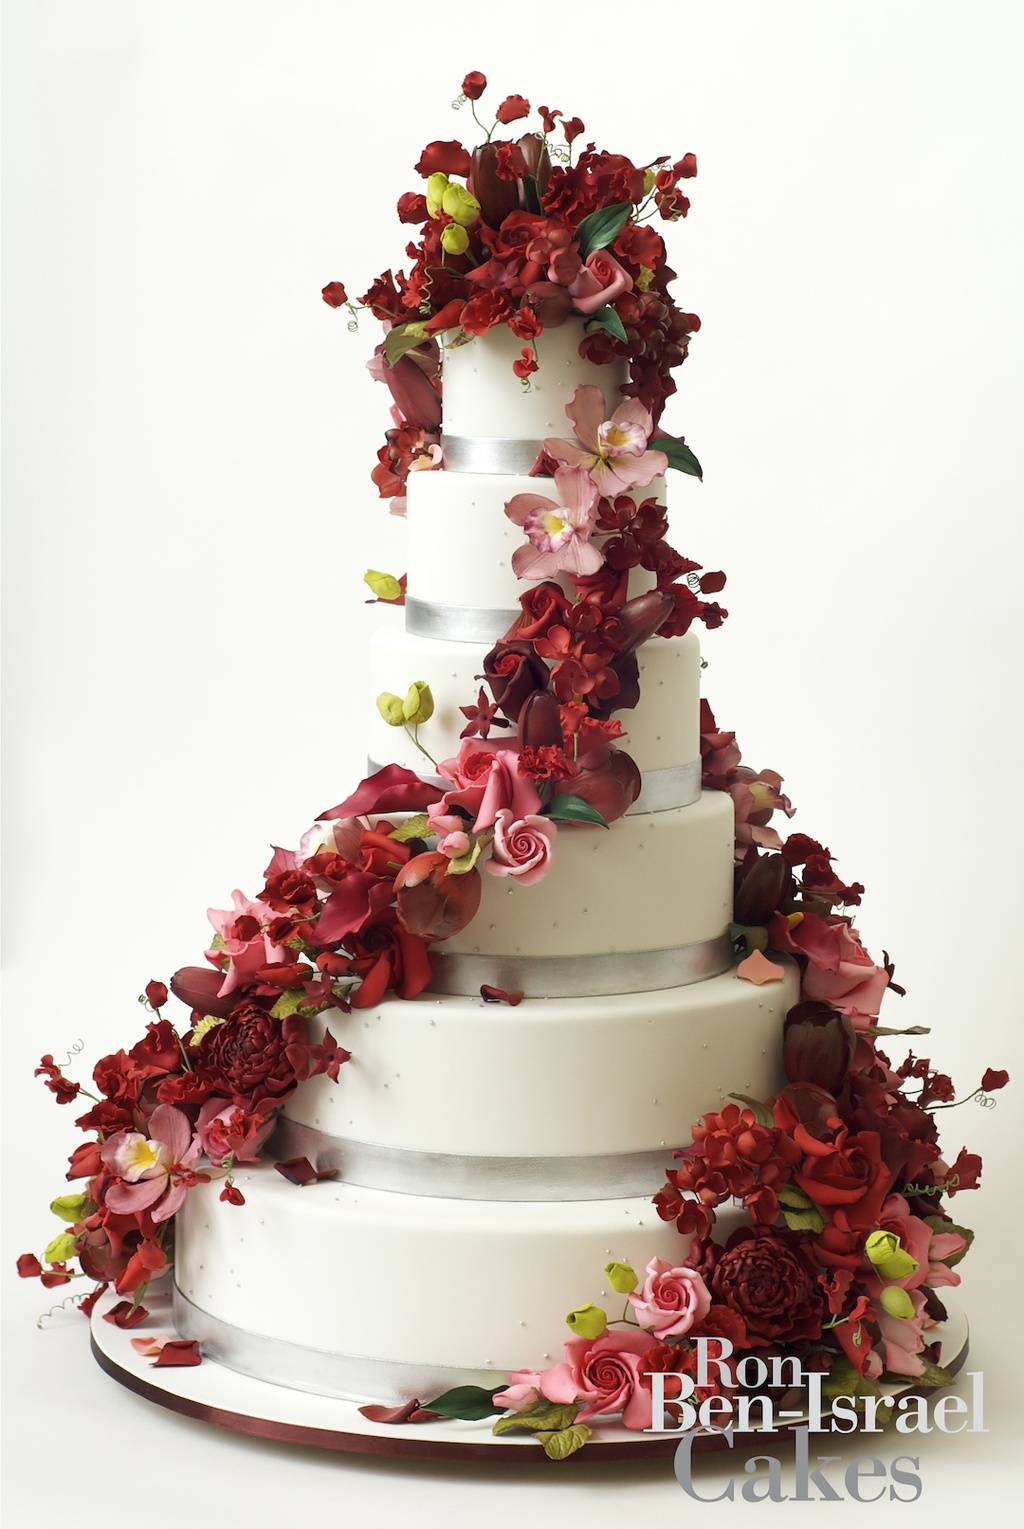 Wedding-cake-inspiration-ron-ben-isreal-wedding-cakes-red-pink-cascading-florals.original.full